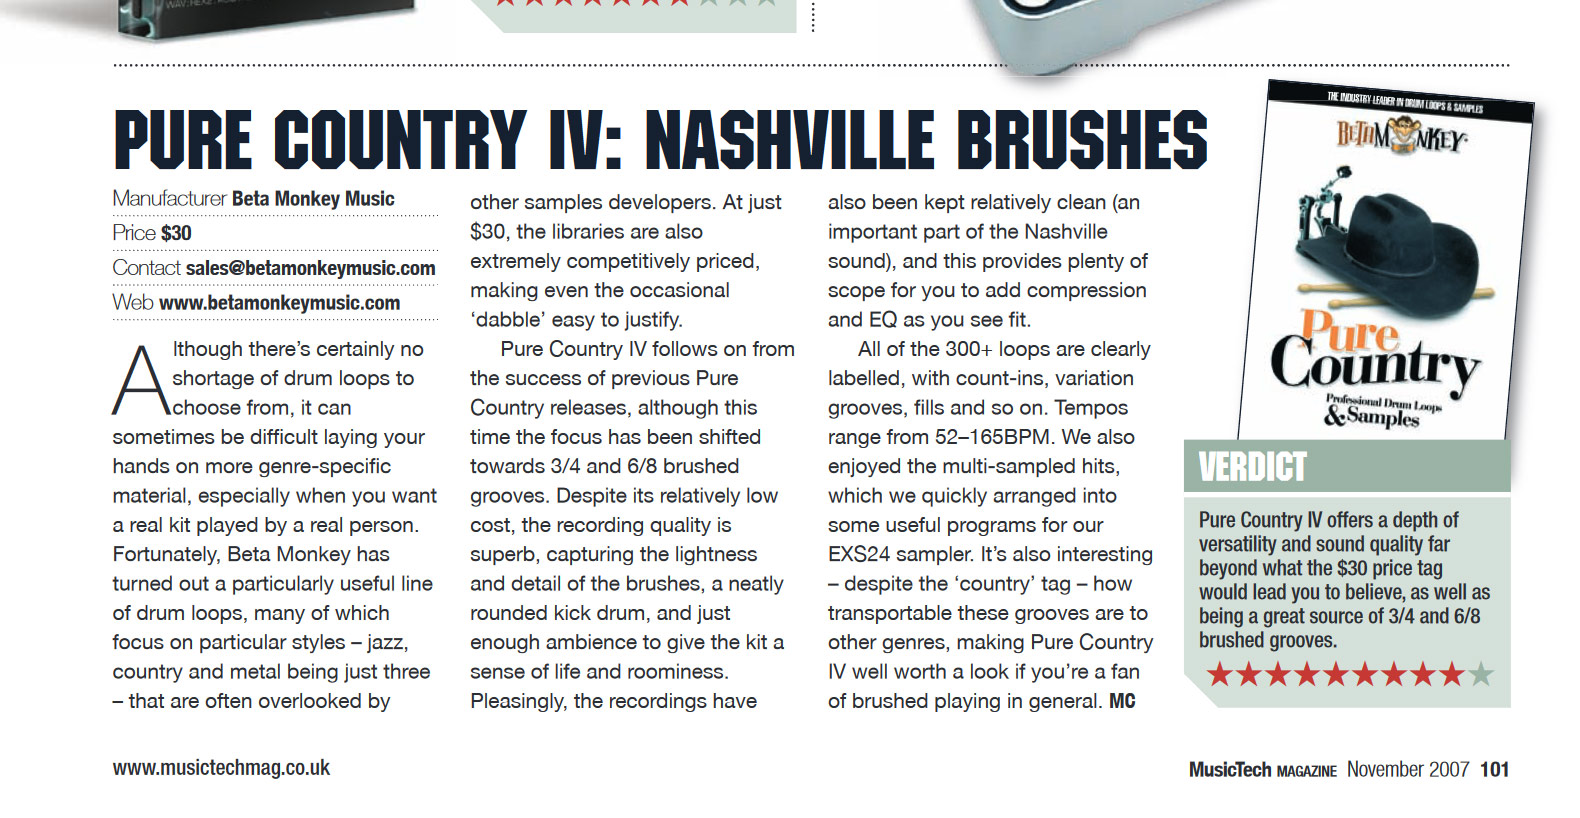 Brush Drum Loops - PURE COUNTRY IV: NASHVILLE BRUSHES™